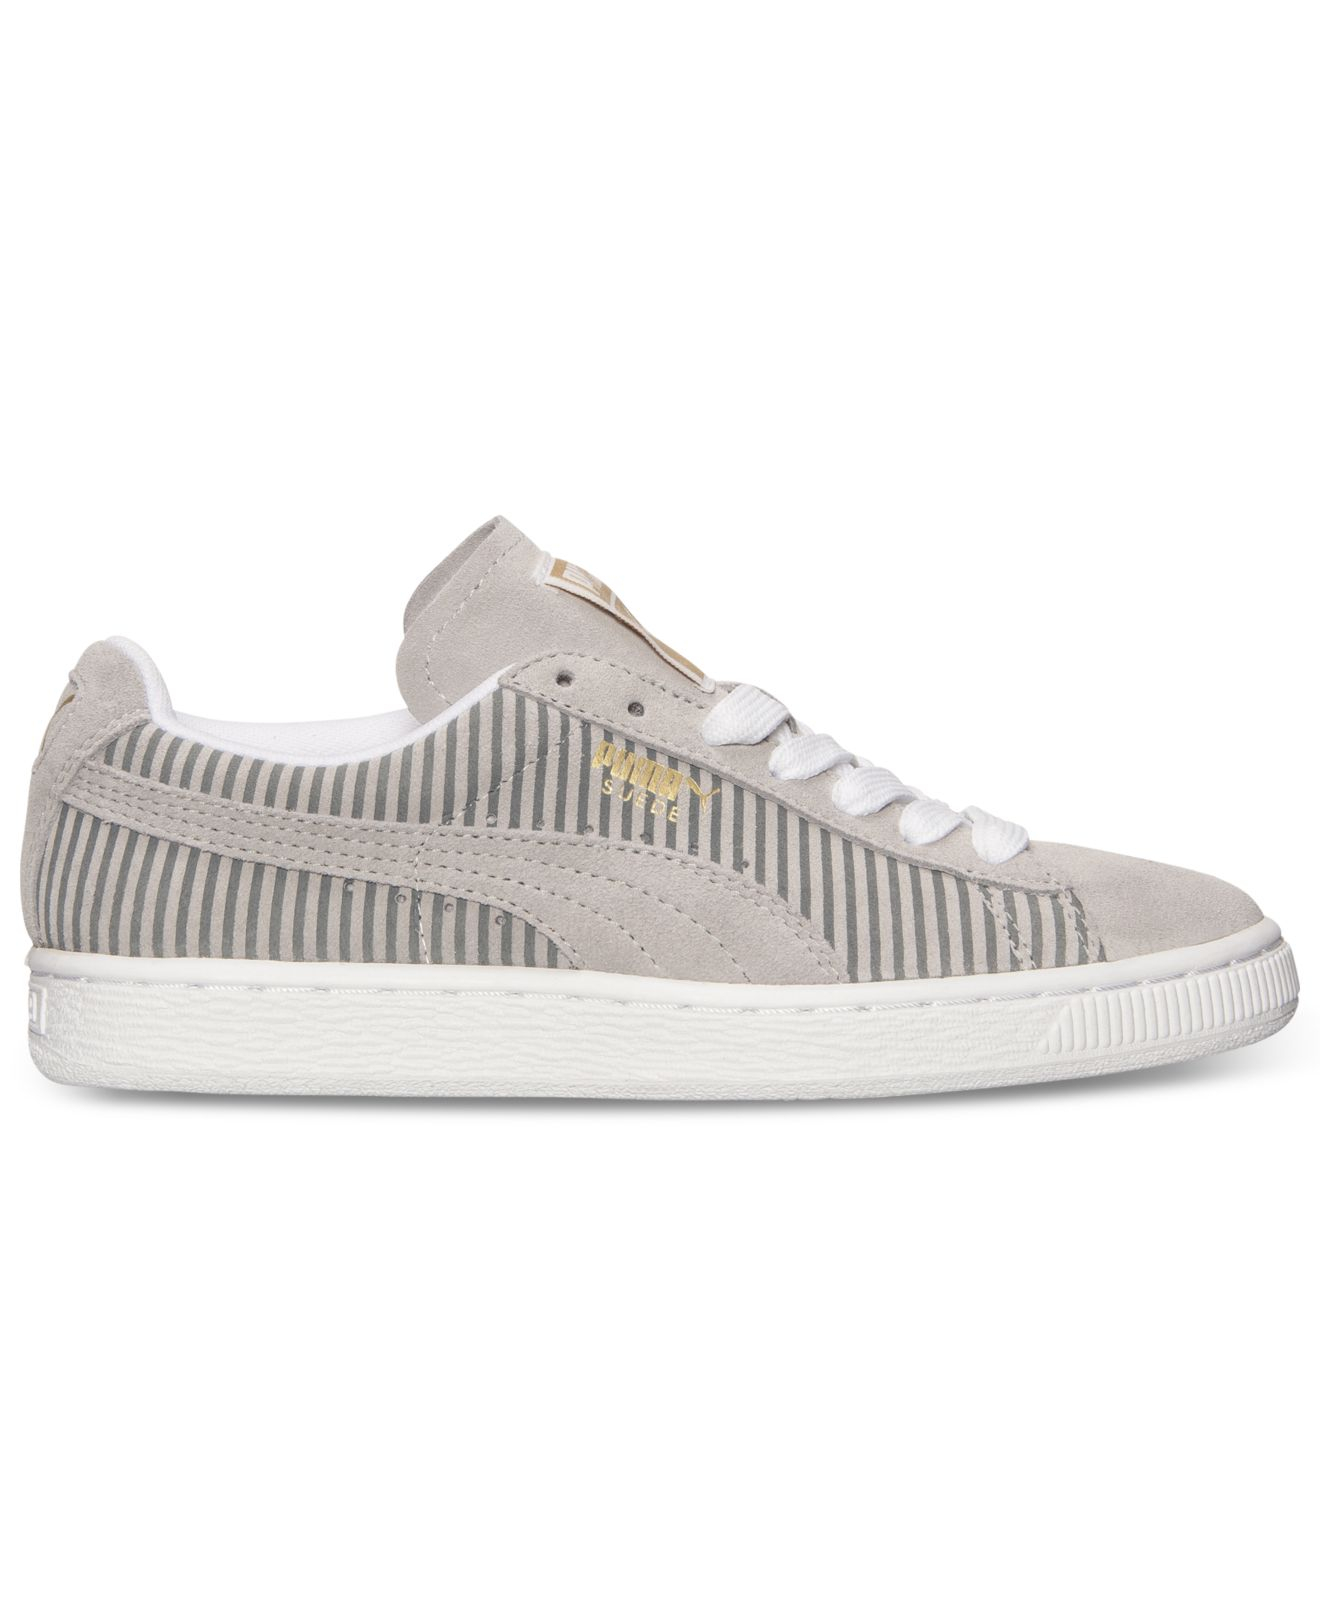 Lyst - PUMA Women S Suede Classic Lo Casual Sneakers From Finish ... 0f05cbfb7